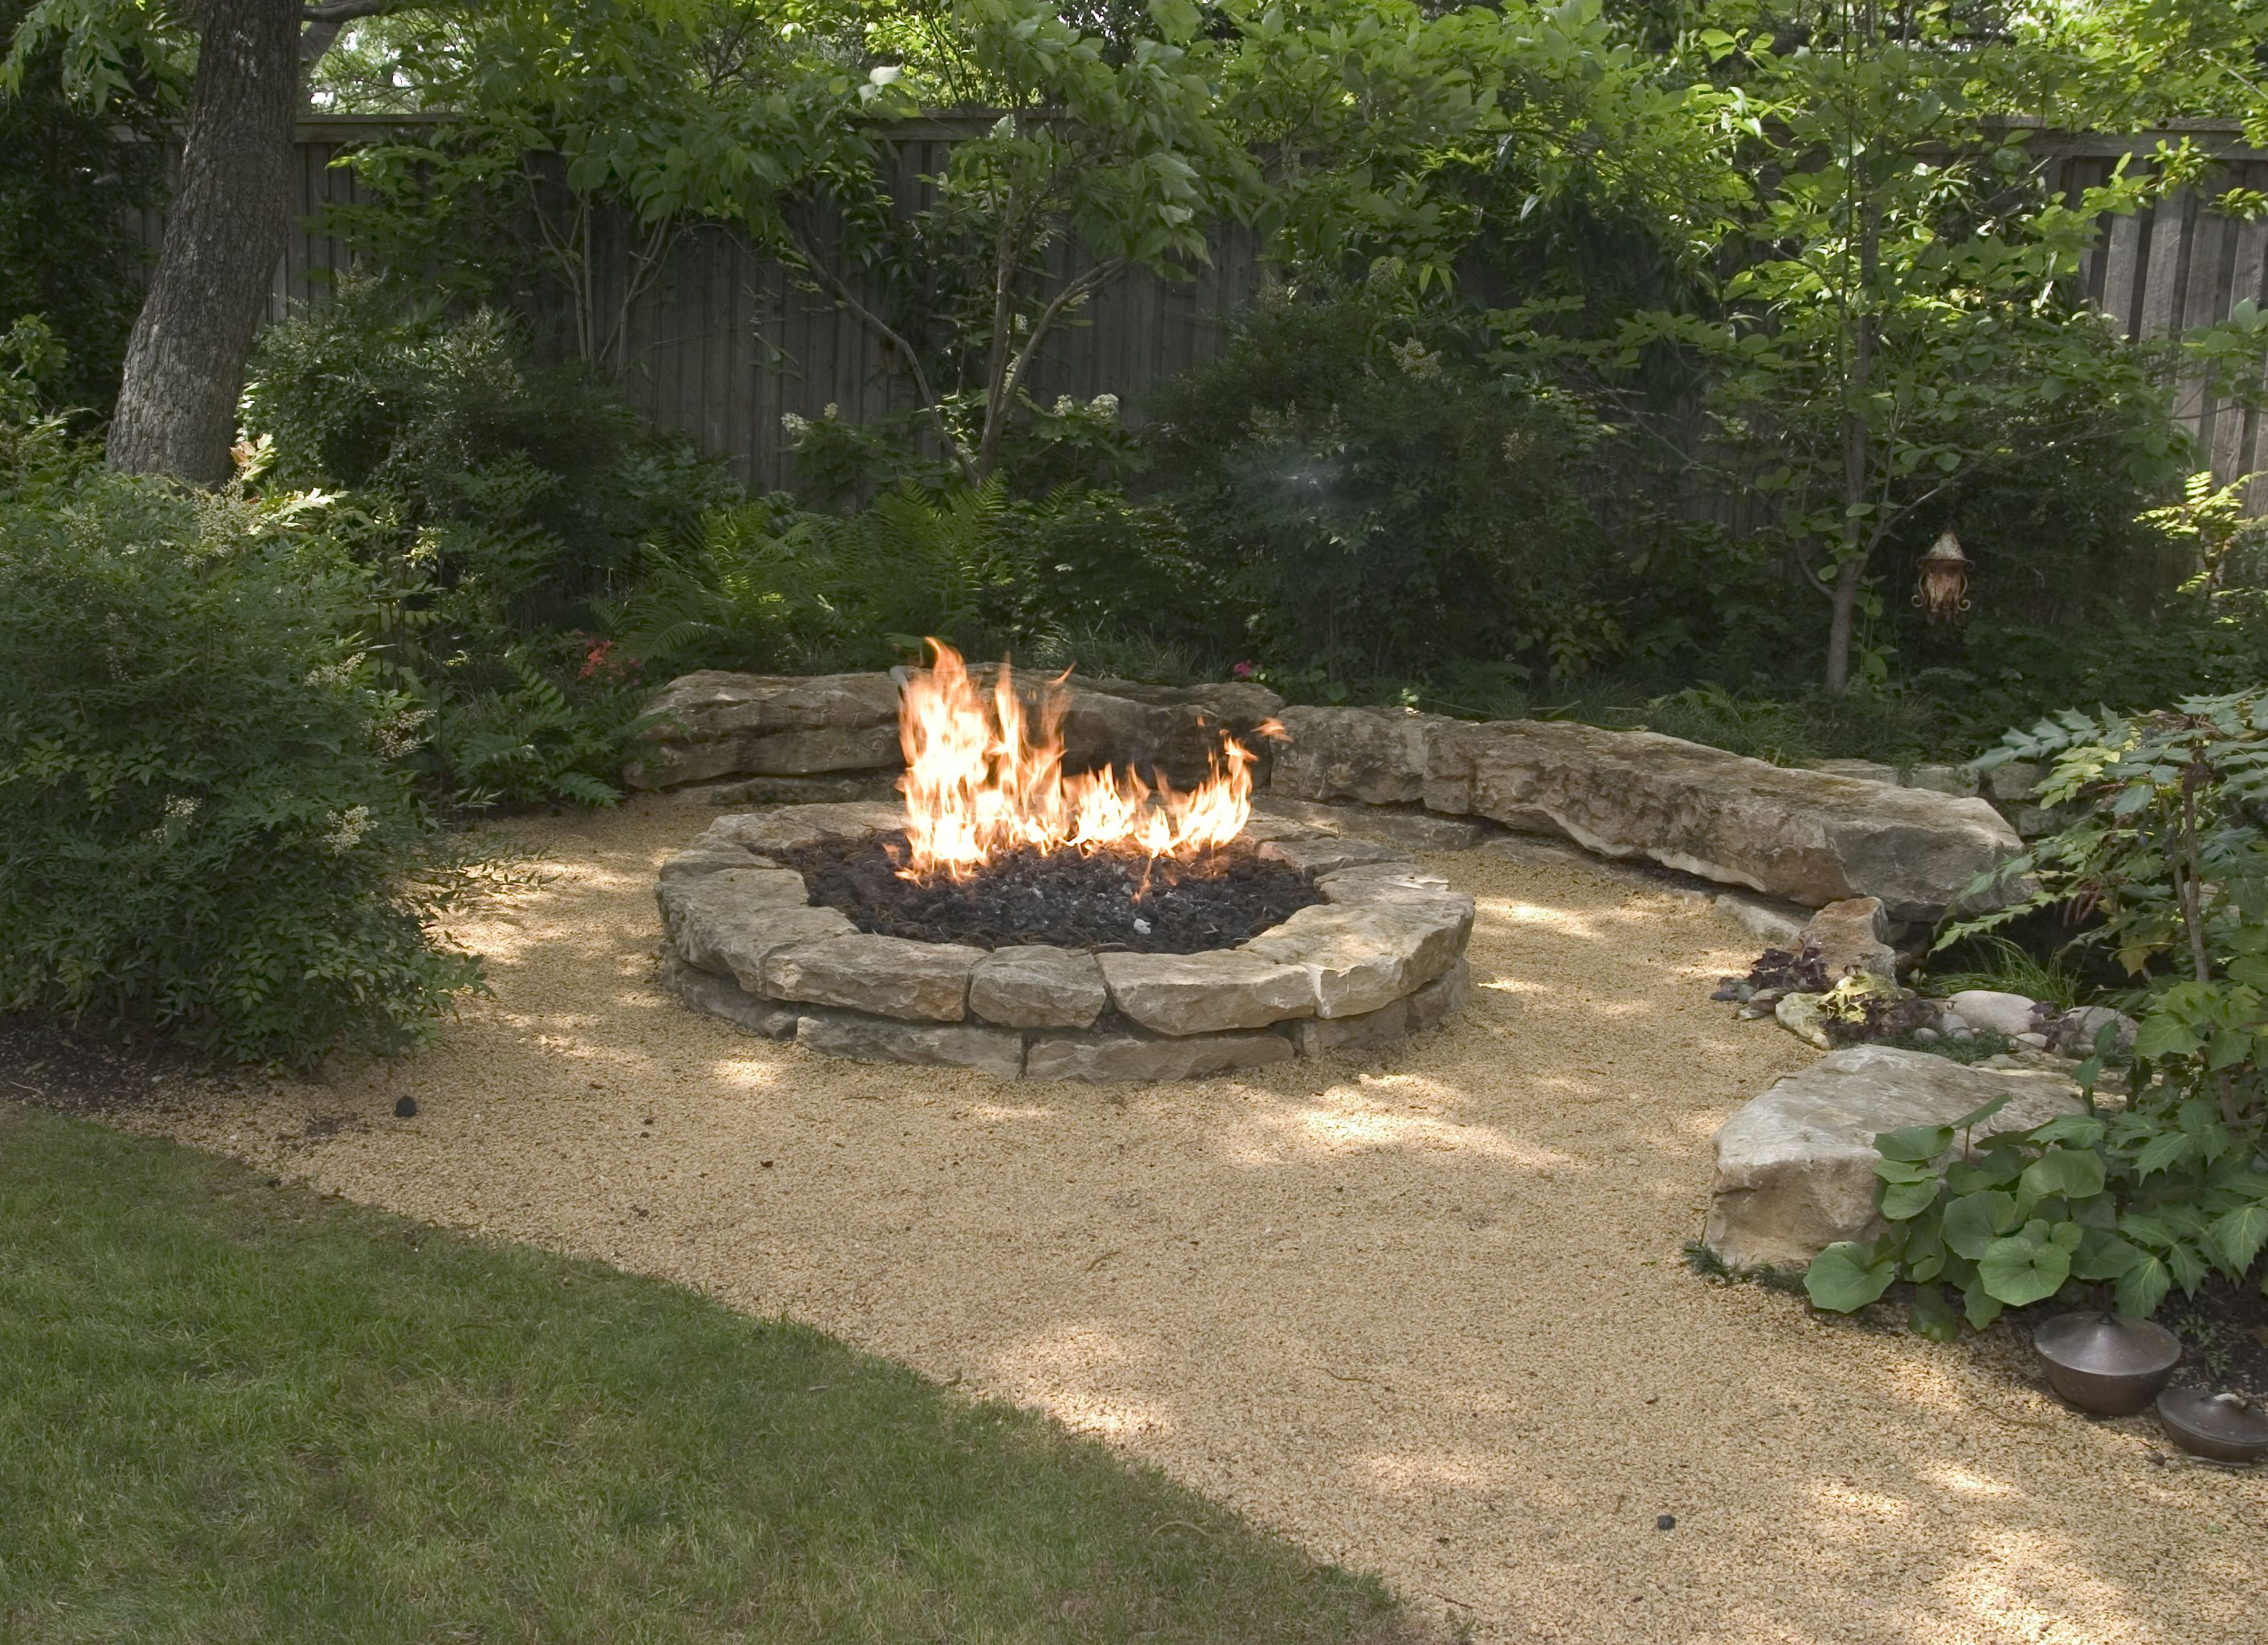 Backyard Landscaping With Fire Pit backyard landscaping ideas-attractive fire pit designs | barns